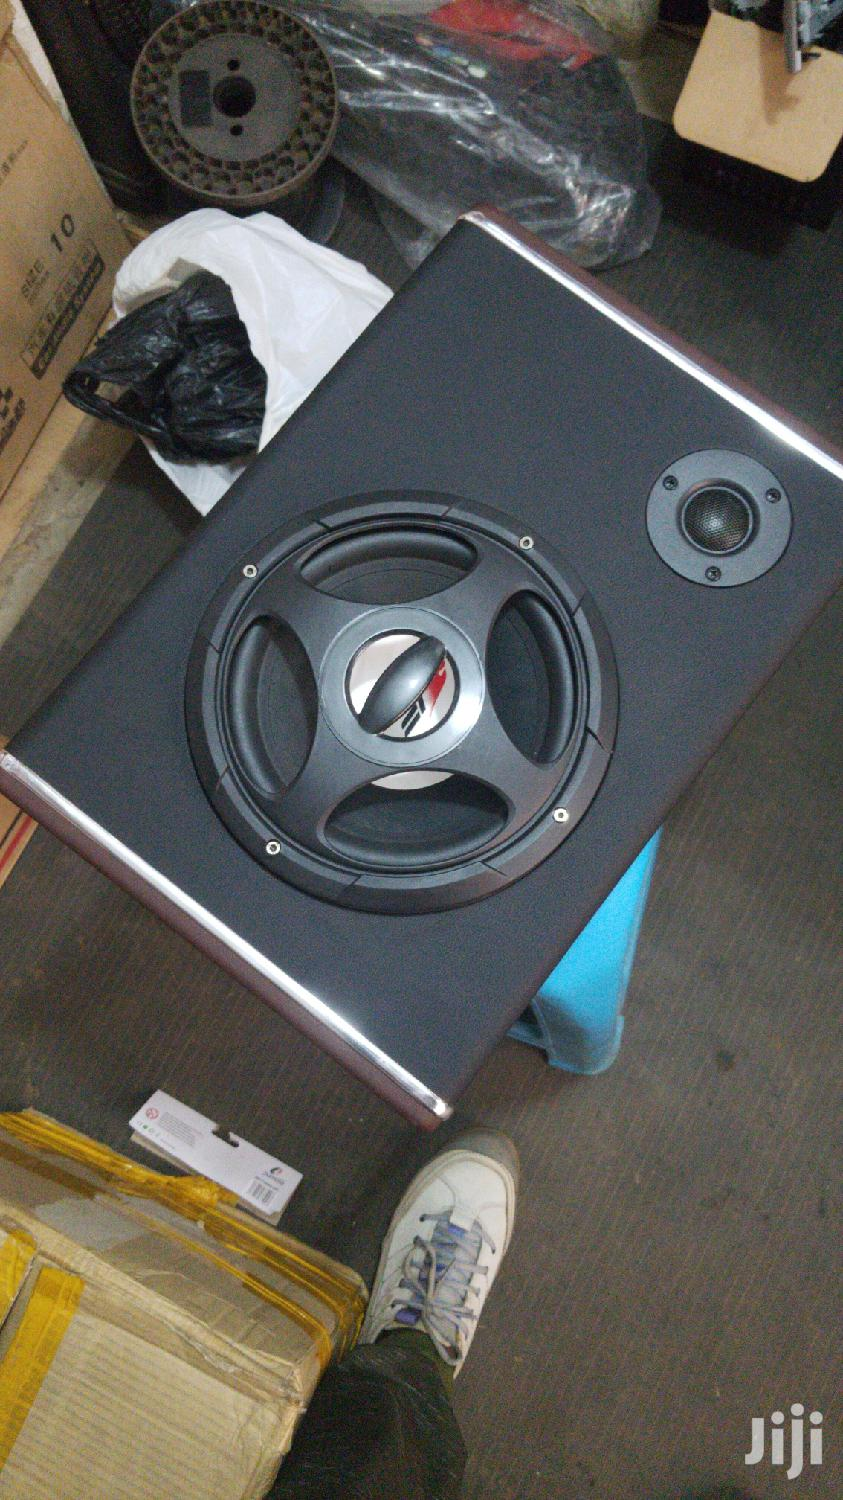 Black Friday Car Woofer For Unders Seats | Vehicle Parts & Accessories for sale in Kampala, Central Region, Uganda